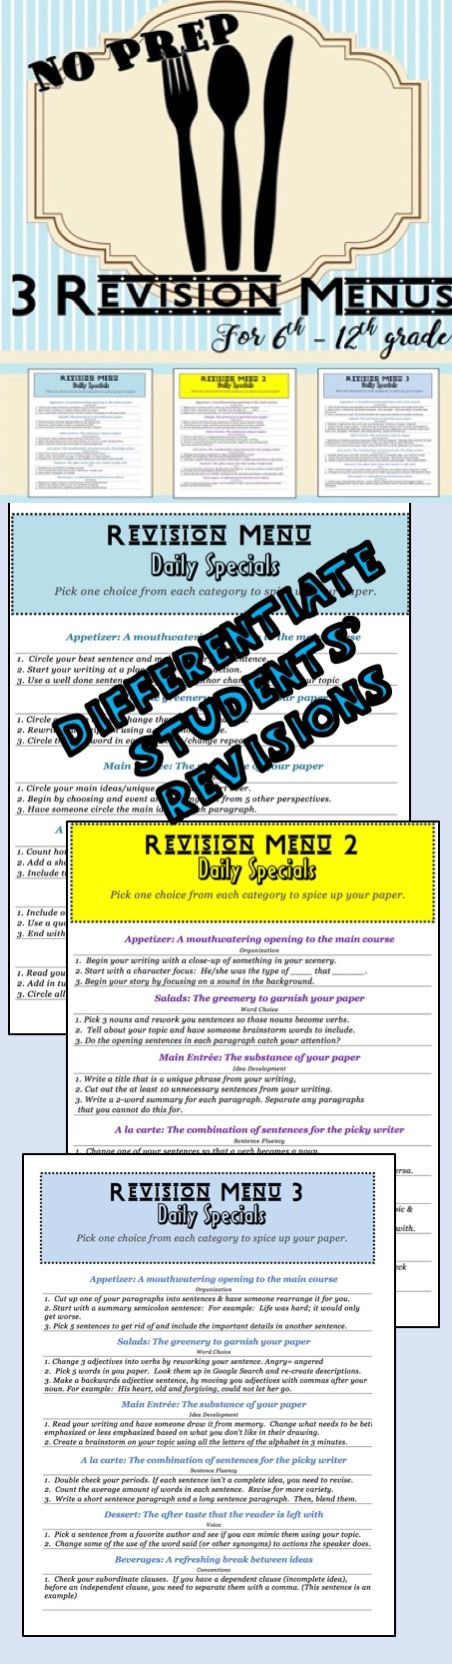 3 unique revision menus with over 40 revision suggestions for students to create better quality writing. Designed for English classrooms from 6th to 12th grade. This is a versatile resource that makes student choice and individualized revisions possible. $1.00